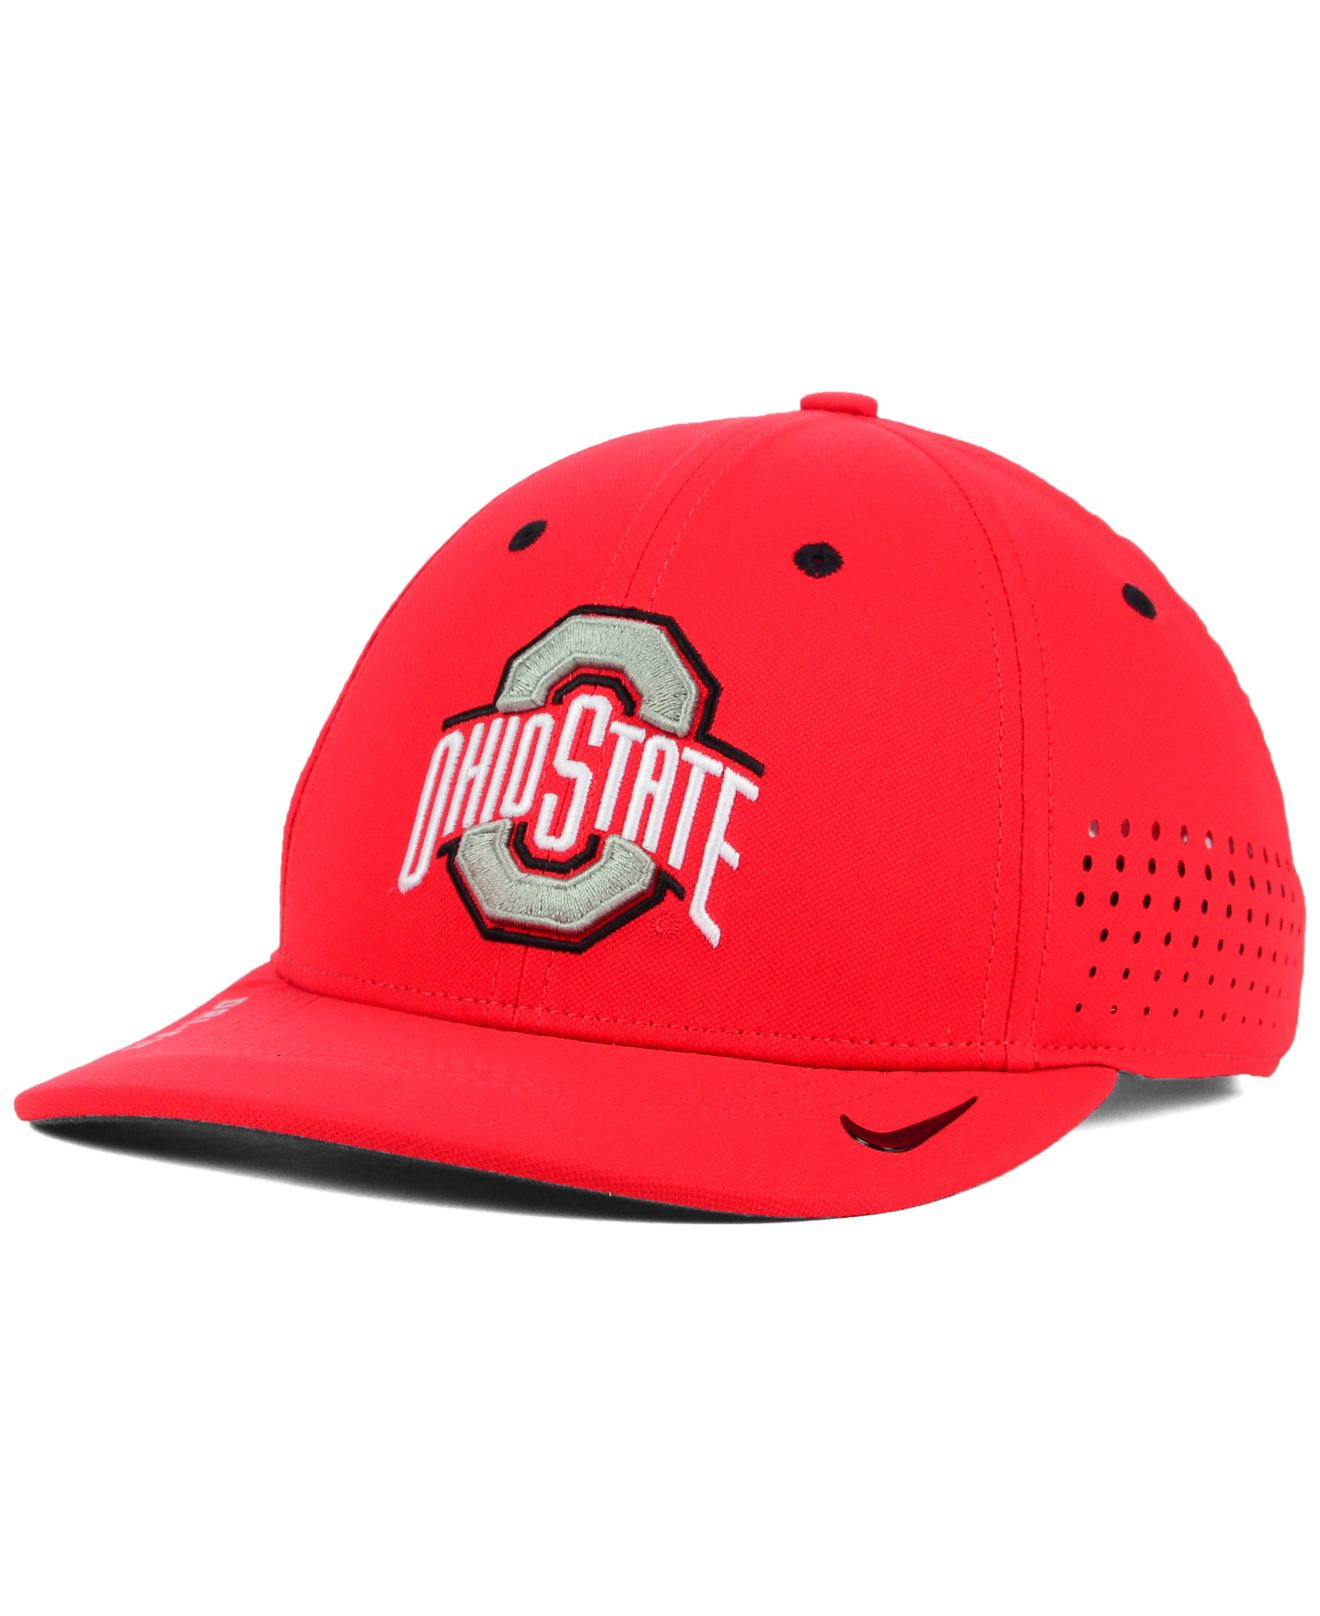 buy online 19522 cc32a ... italy lyst nike ohio state buckeyes sideline cap in red for men 3186e  6fda3